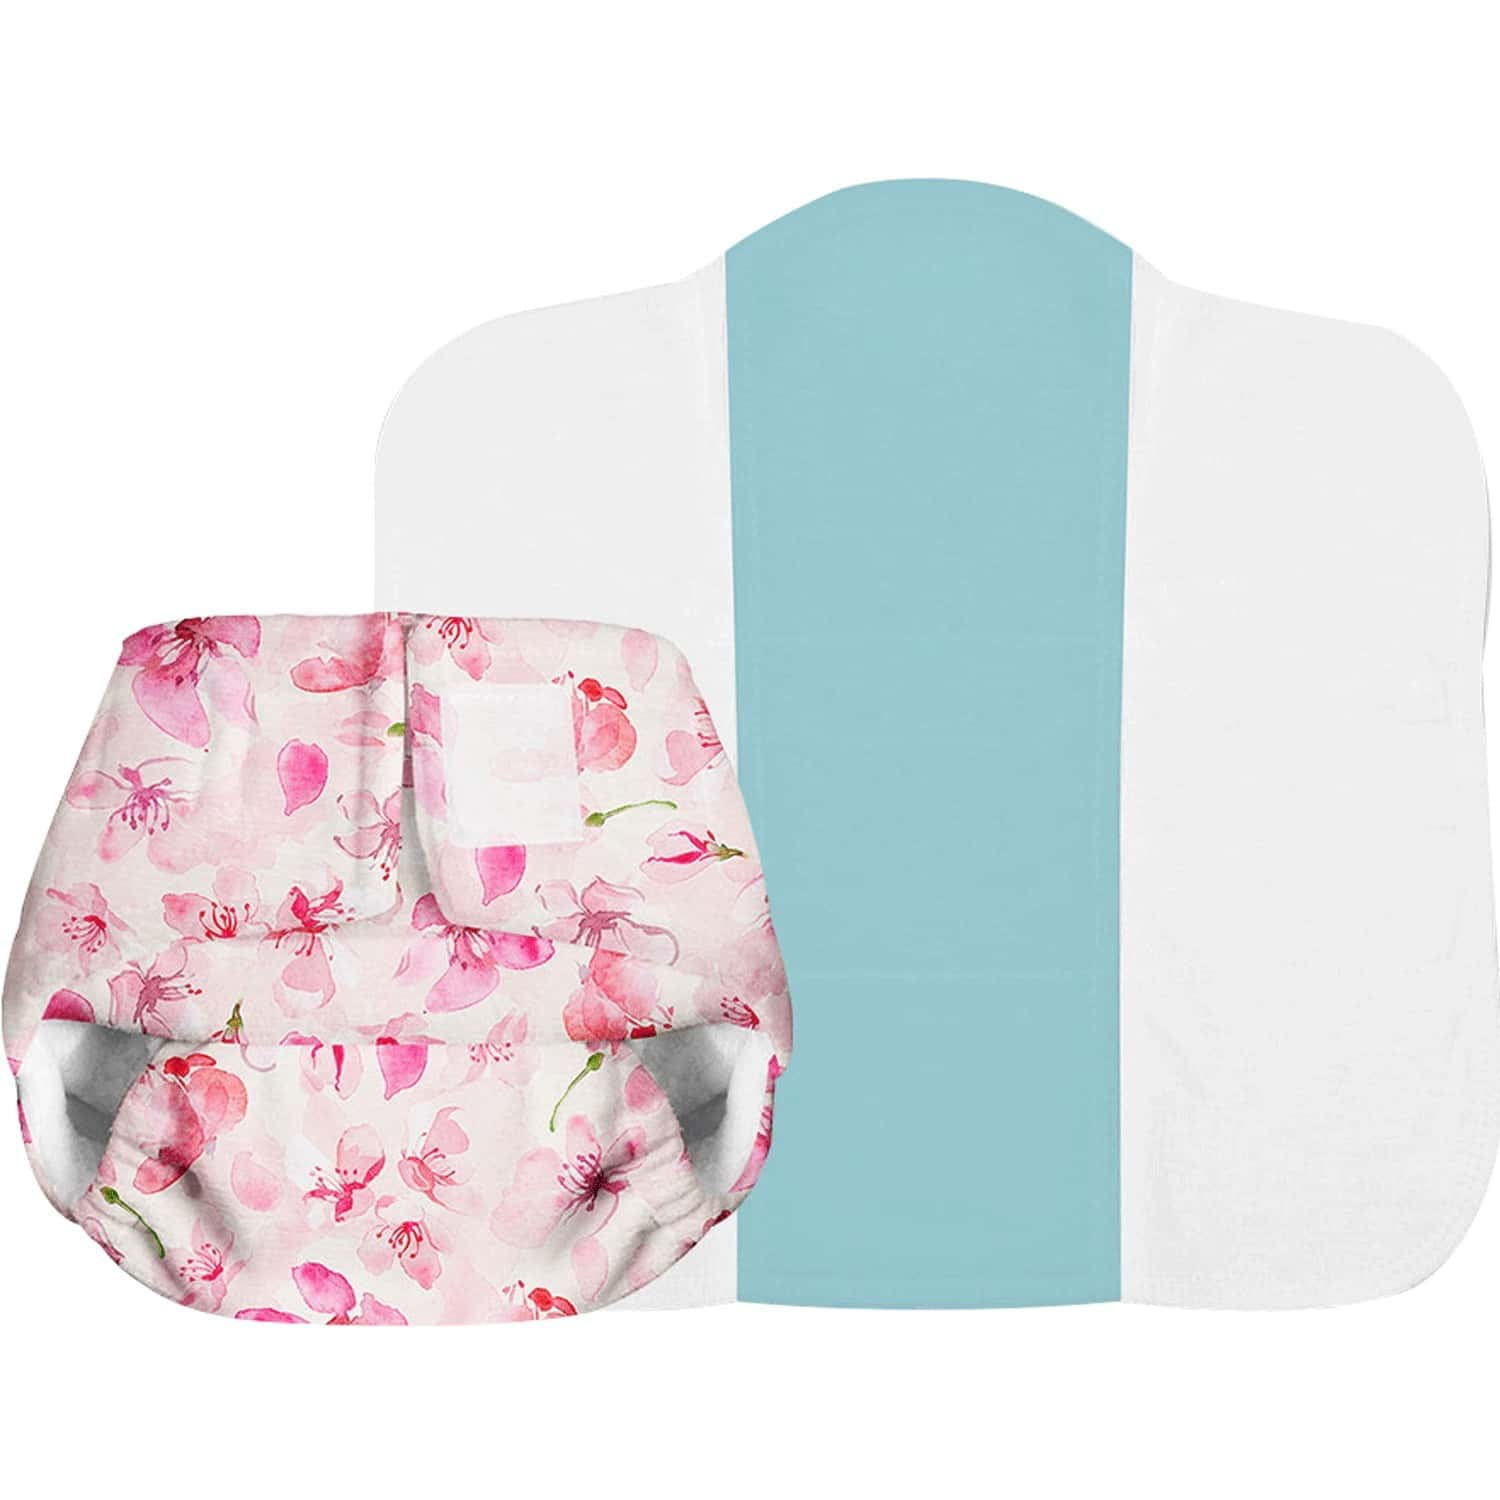 Superbottoms Newborn Uno Reusable Cloth Diaper With Dry Feel Pad 0-6 Months - Cherry Blossom